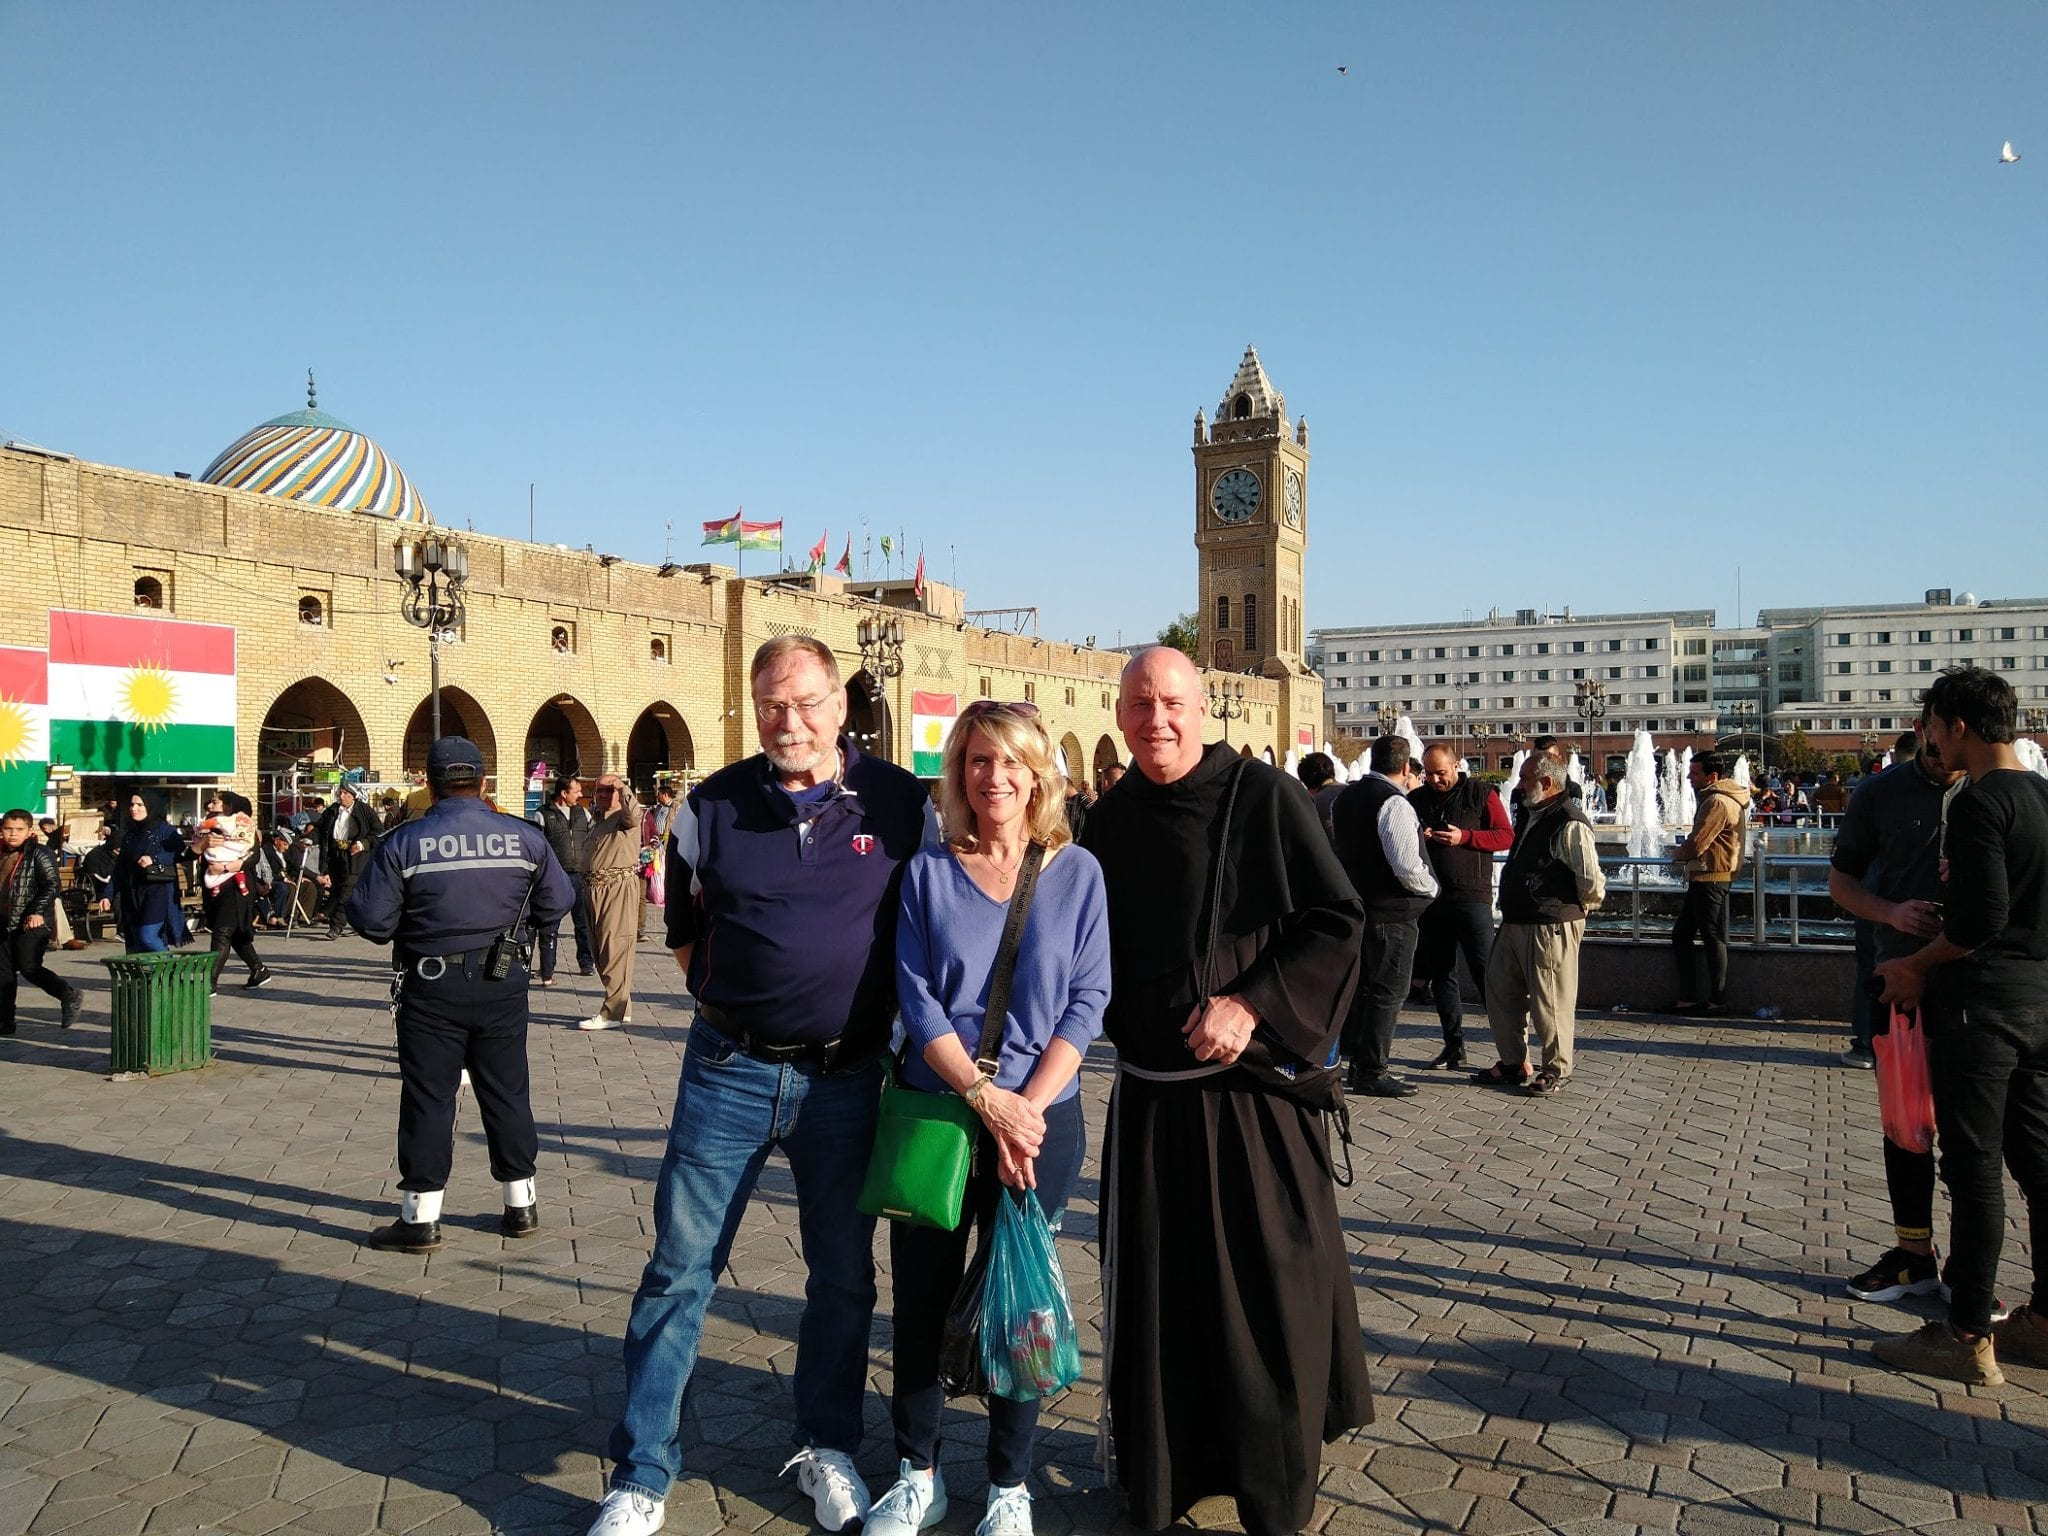 Dr. Daniel Kempton, vice president for Academic Affairs at Franciscan University, Dr. Tiffany Boury, director of Franciscan's Master of Catholic Leadership Program, and Fr. Dave Pivonka, TOR, president of Franciscan University, visit the Citadel in the historic city center of Erbil, Iraq.